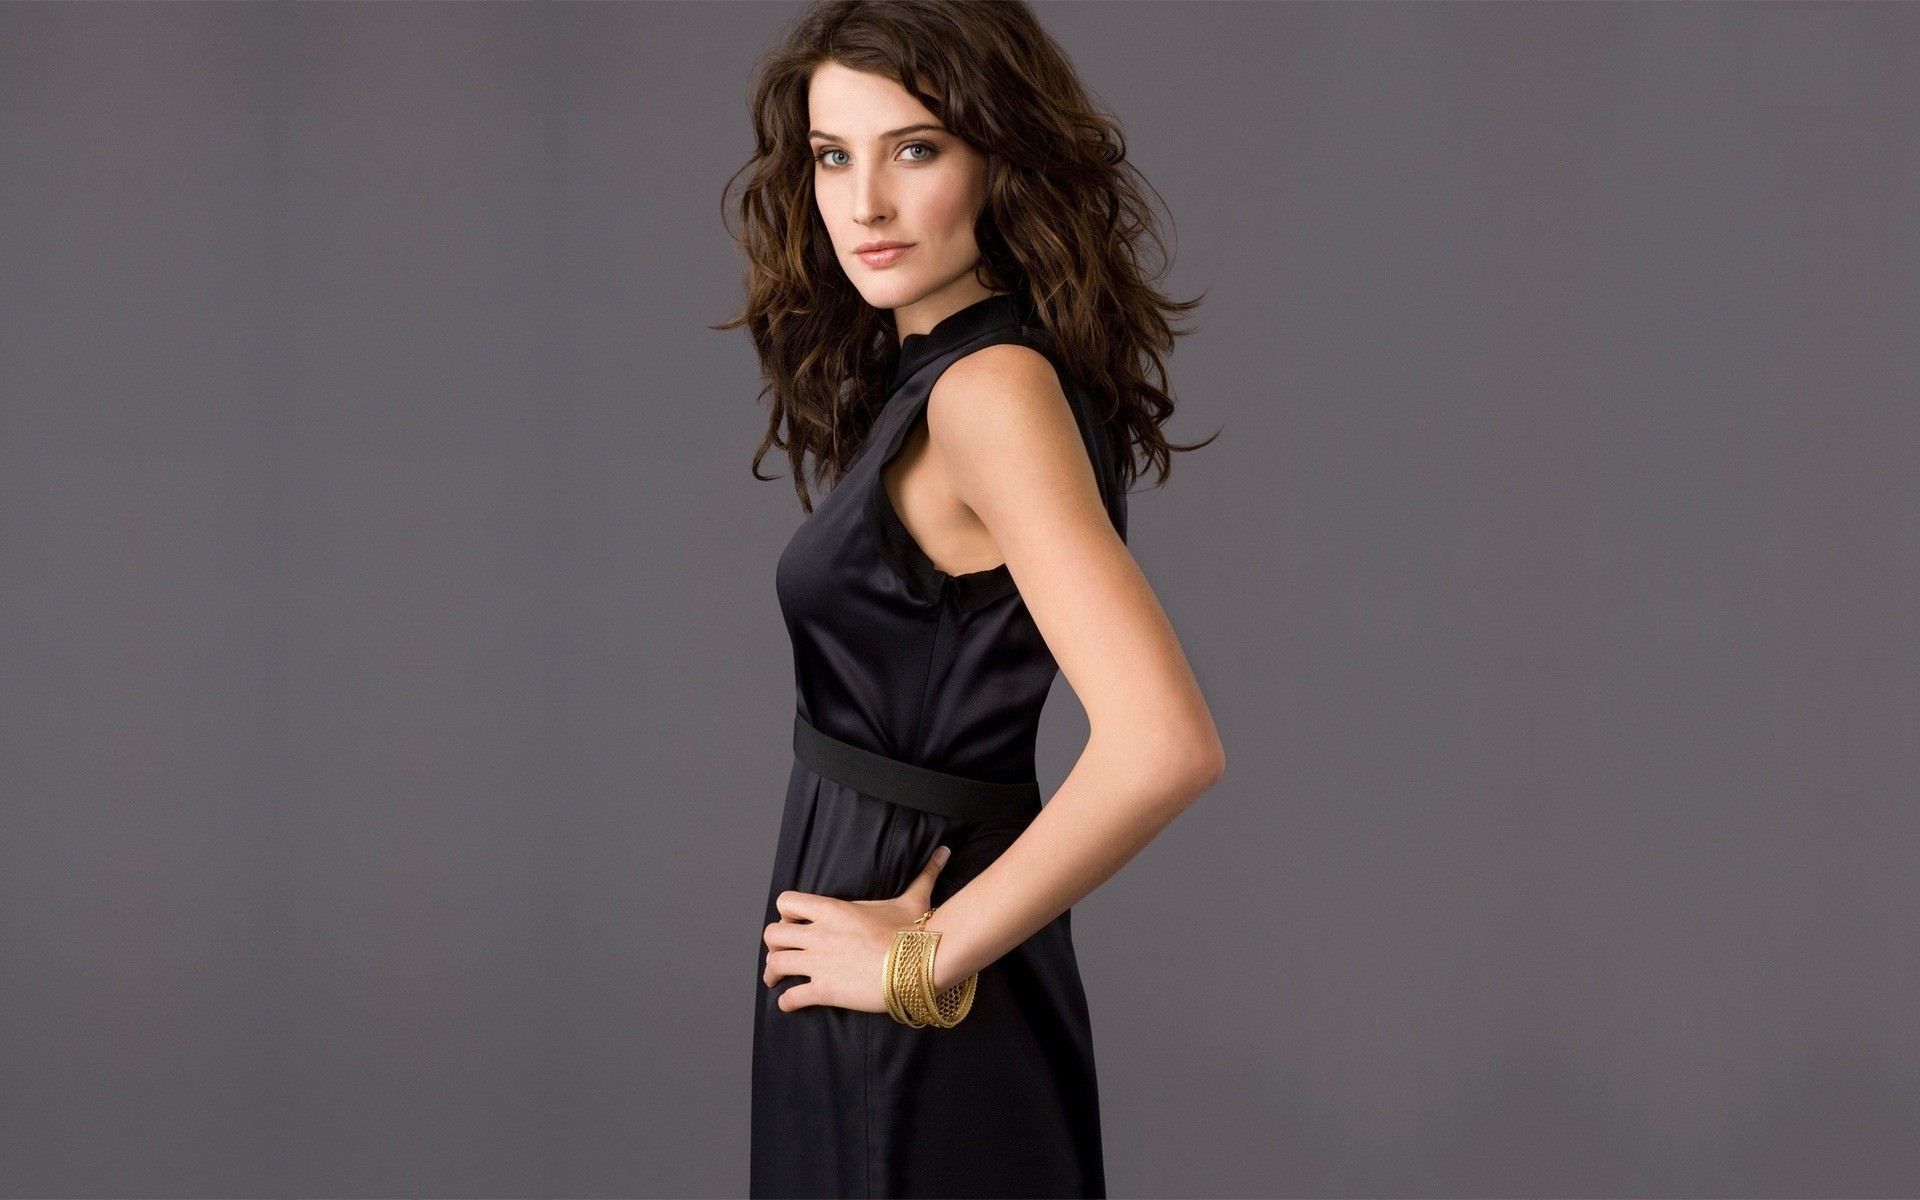 1920x1200 - Cobie Smulders Wallpapers 27